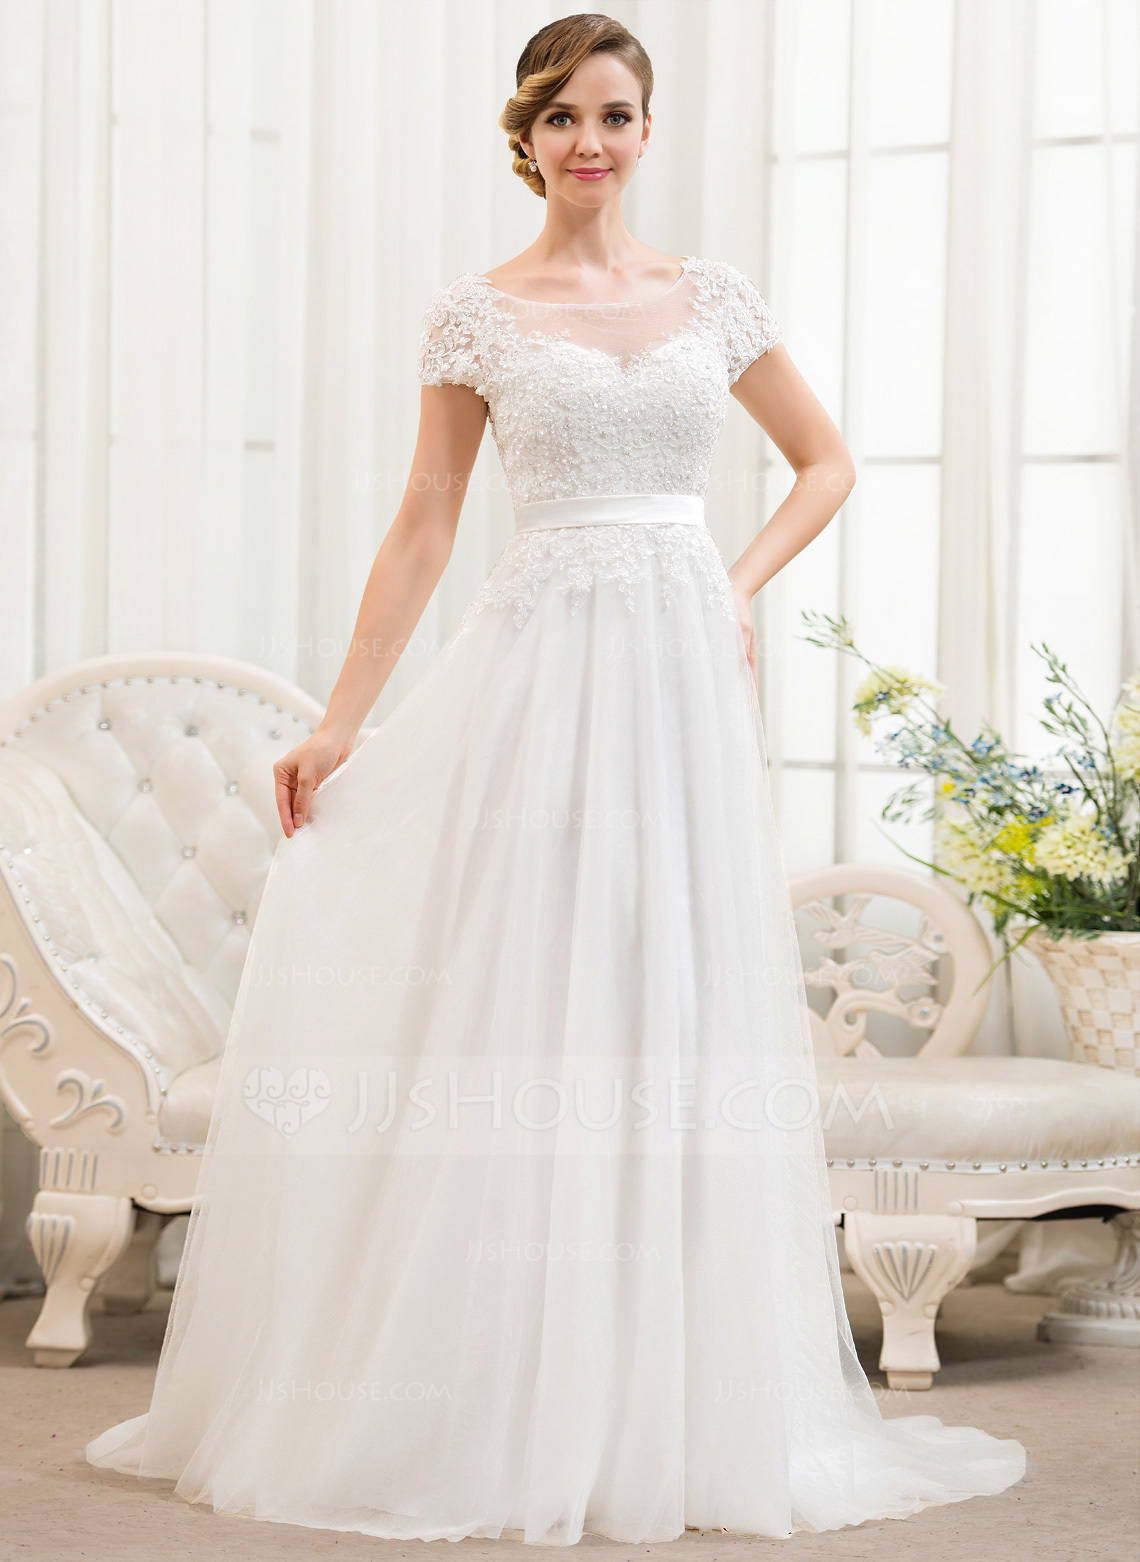 A Line Princess Scoop Neck Sweep Train Tulle Lace Wedding Dress With Beading Sequins g jjshouse wedding dress Home Wedding Dresses Loading zoom